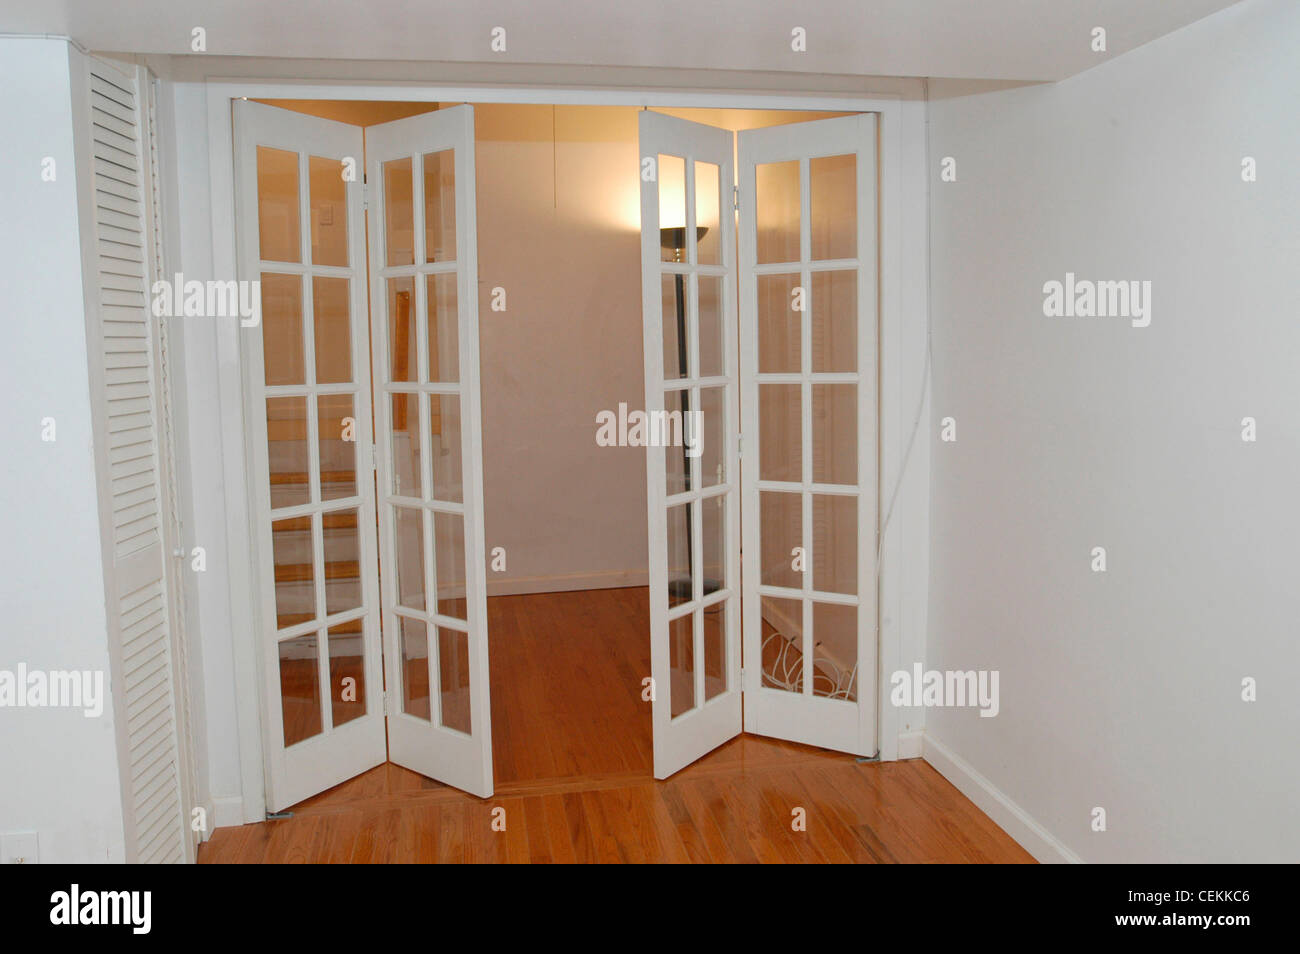 Interior Doors Of An Apartment For Sale In New York On May 27, 2004 (